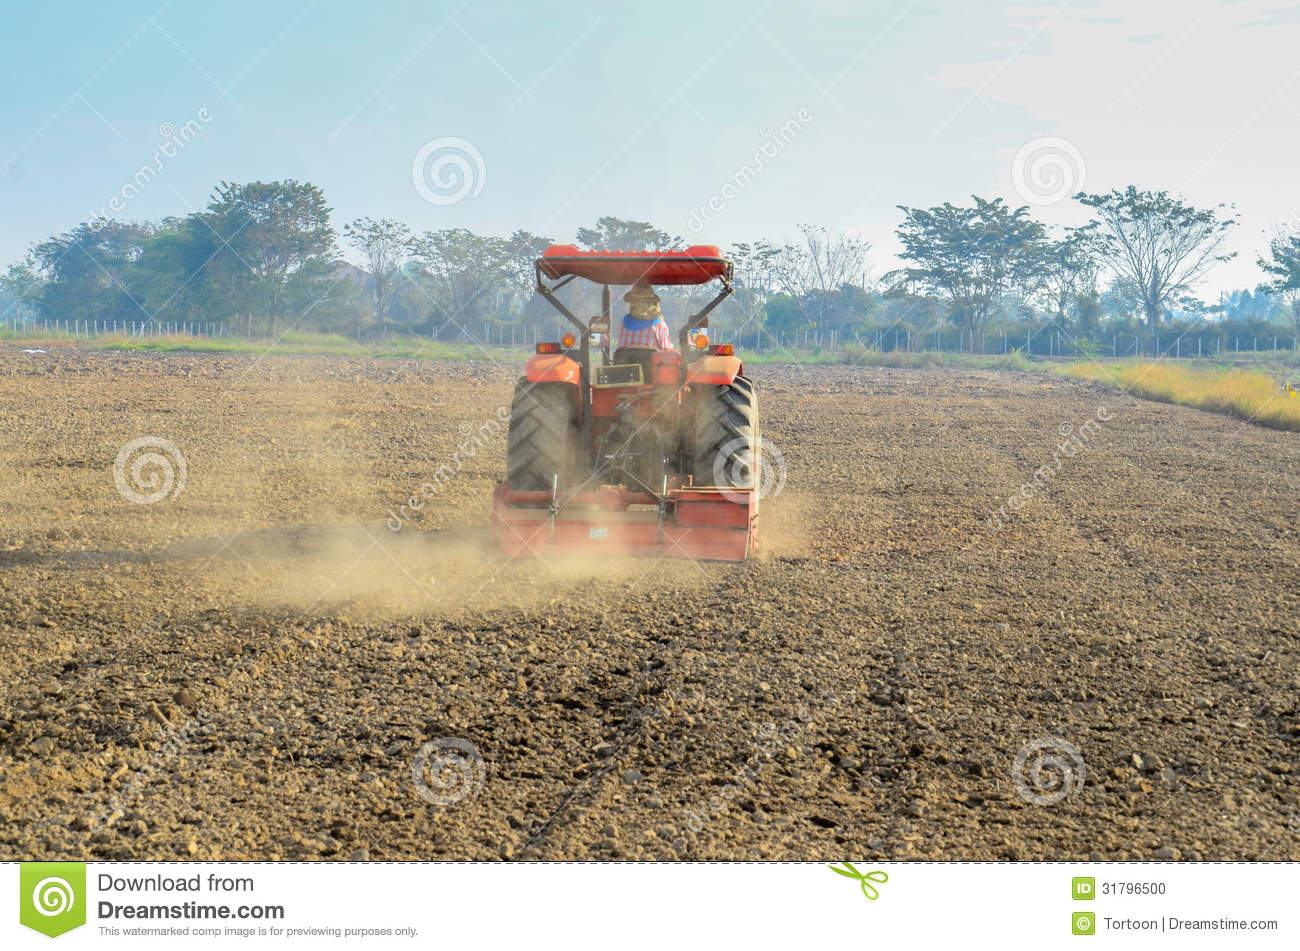 Tractor In Field Planting : Tractors planting farm field stock photo image